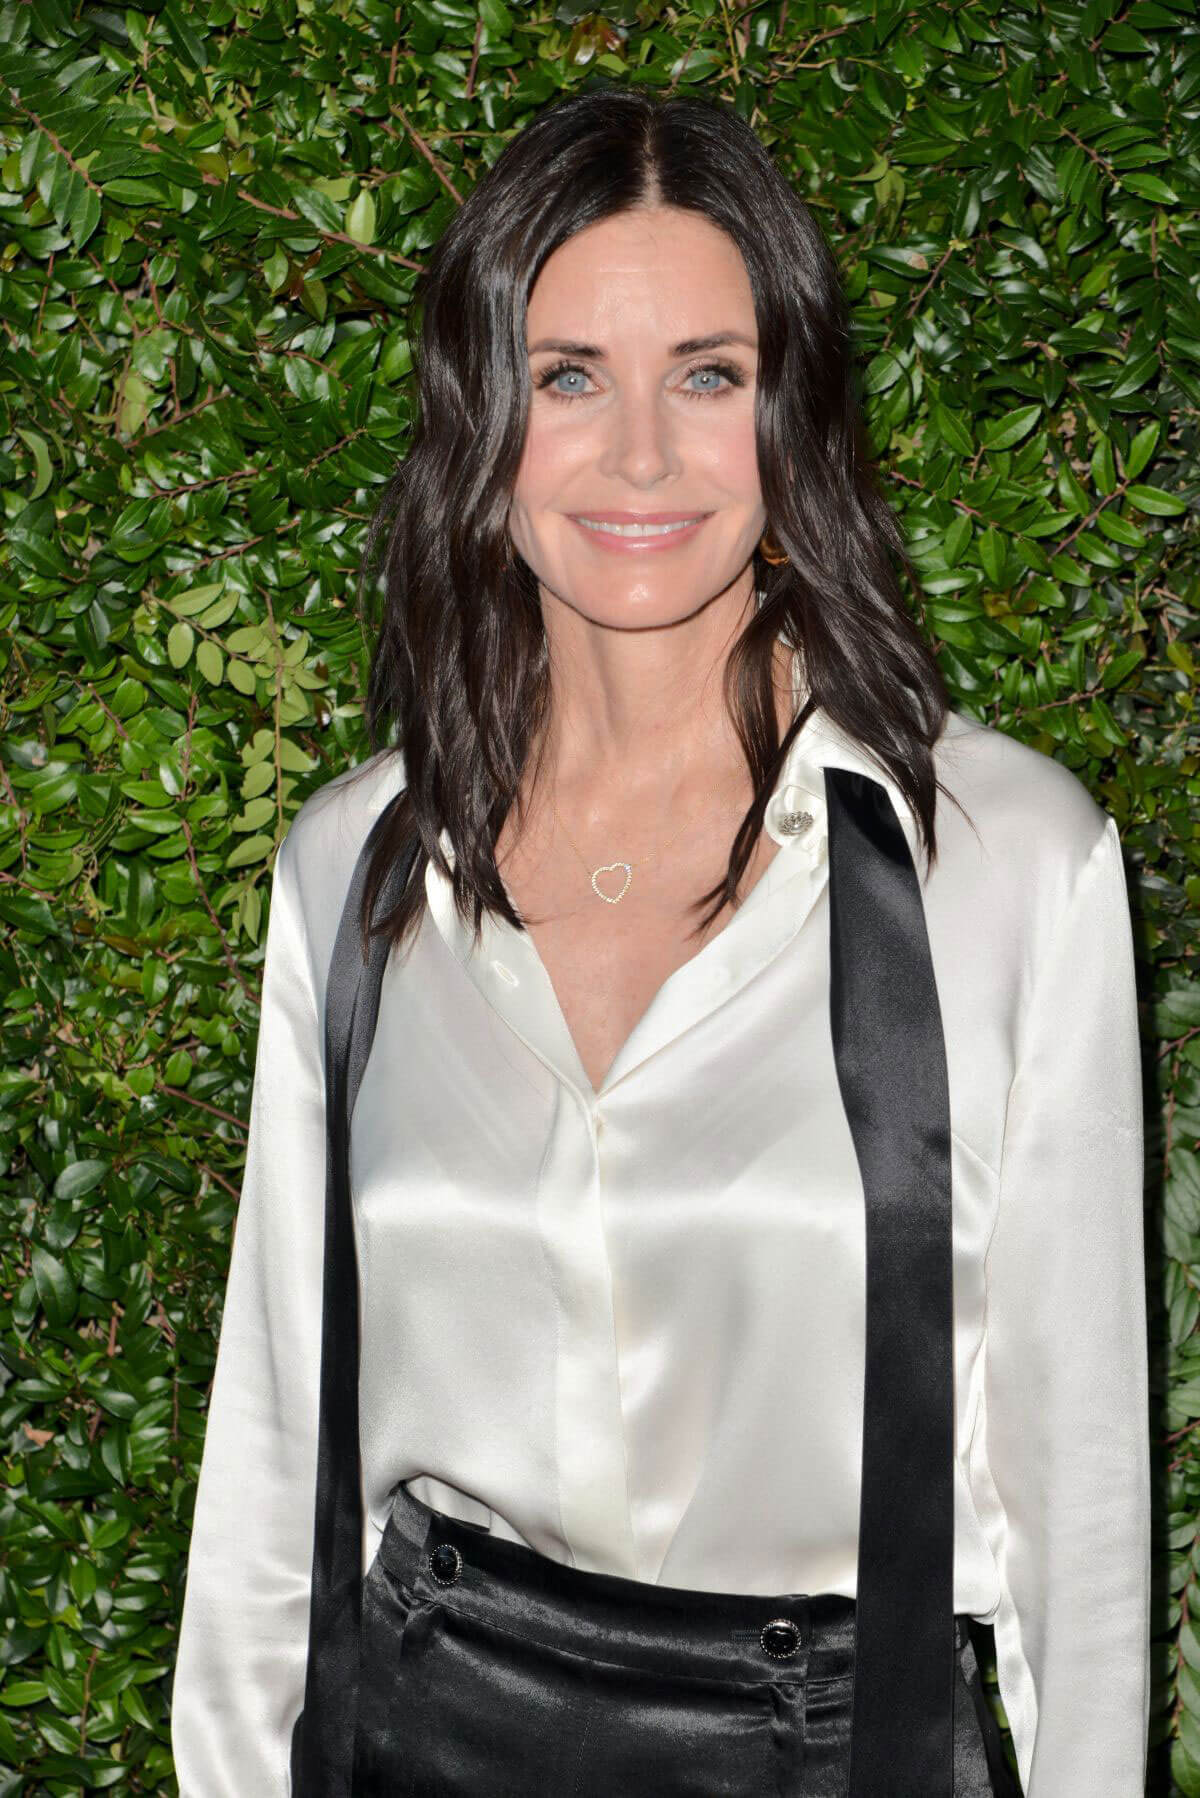 Courteney Cox at Chanel Dinner Celebrating Our Majestic Oceans in Malibu 2018/06/02 13